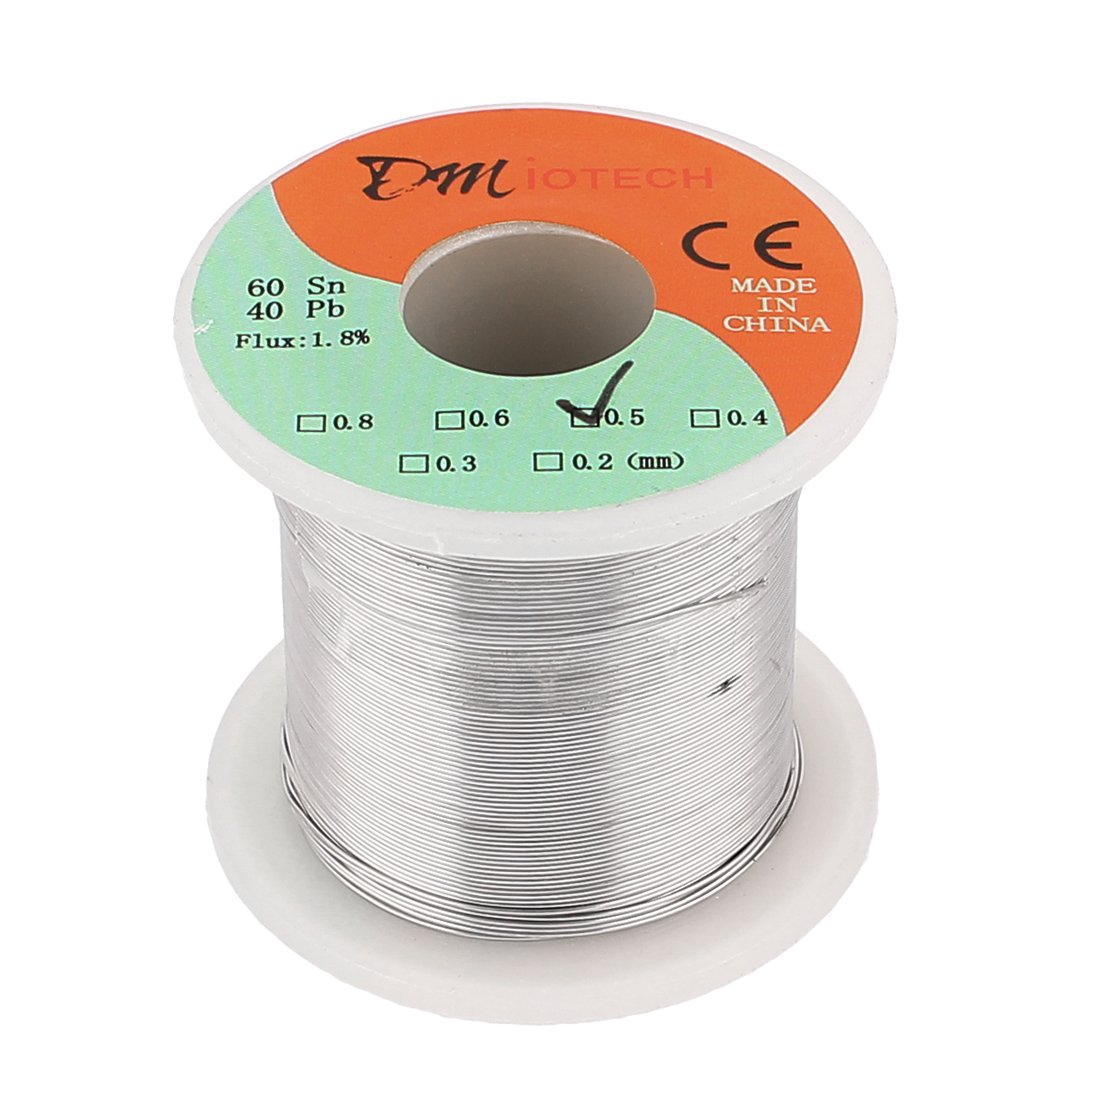 DMiotech 0.5mm 200G 60/40 Rosin Core Tin Lead Roll Soldering Solder Wire